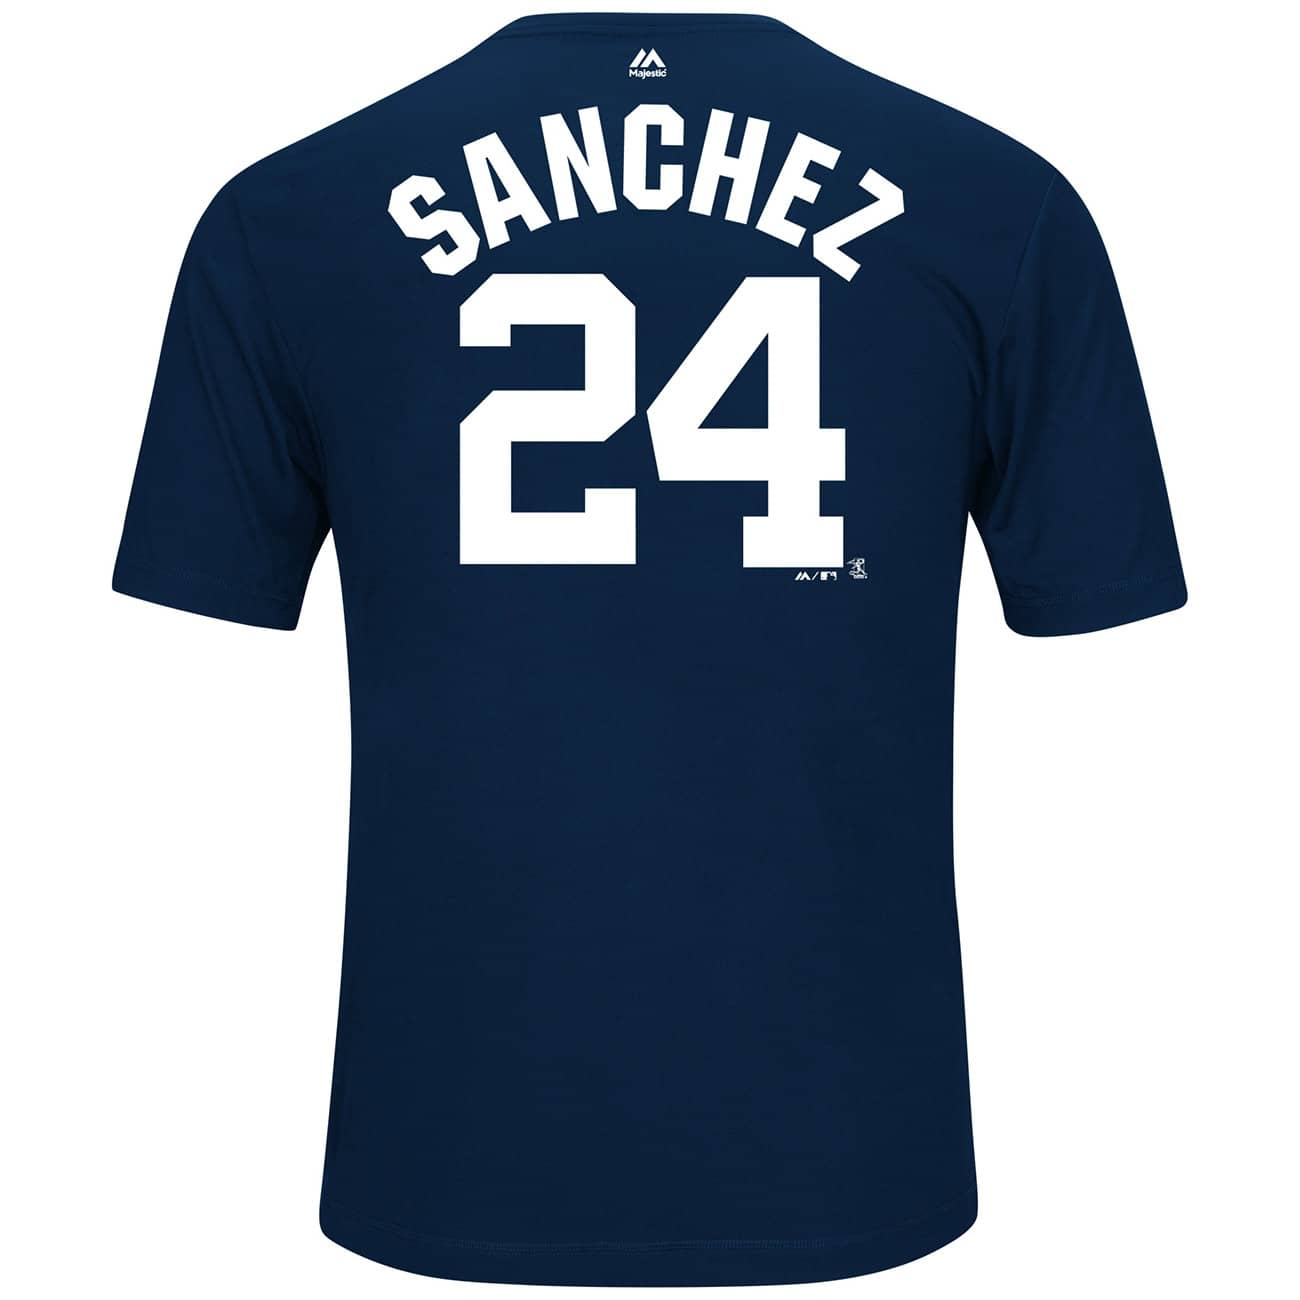 majestic gary sanchez 34 new york yankees player mlb t shirt navy fan shop. Black Bedroom Furniture Sets. Home Design Ideas